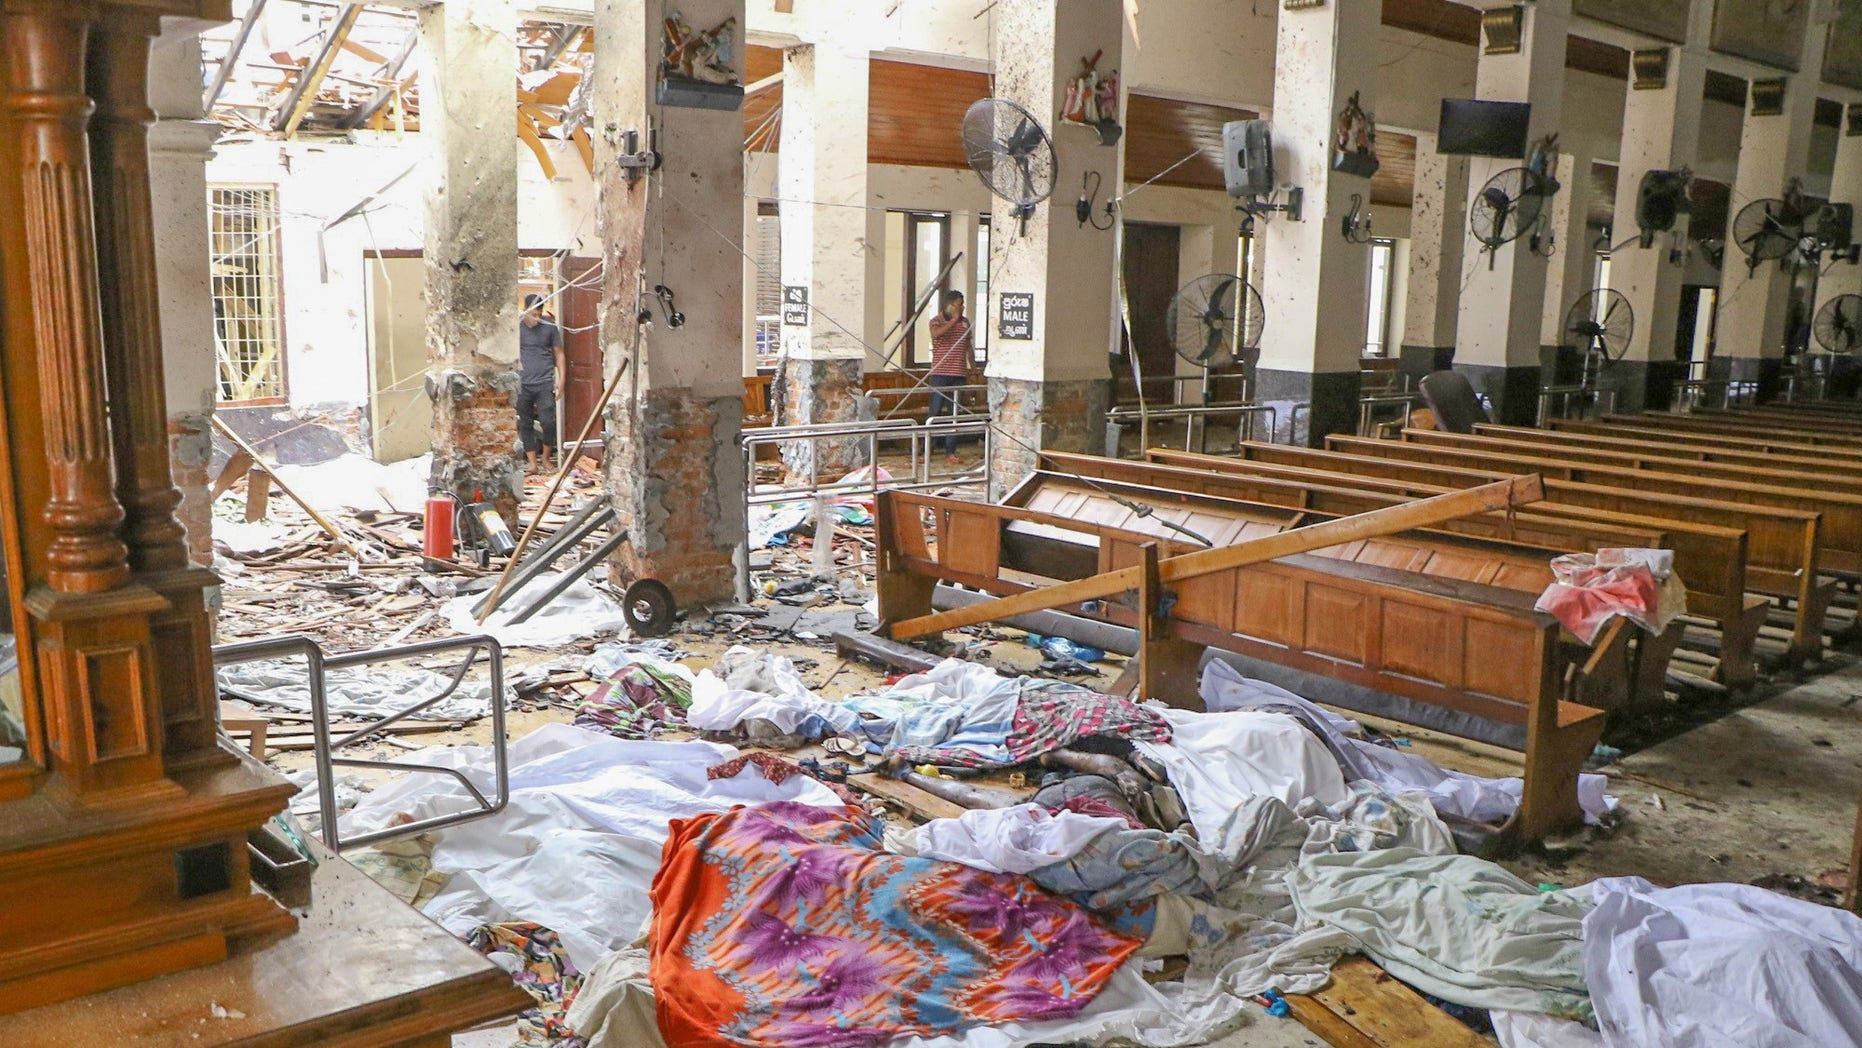 An inside view of the St. Anthony's Shrine after an explosion hit St Anthony's Church in Kochchikade in Colombo, Sri Lanka on April 21, 2019. (Photo by Chamila Karunarathne/Anadolu Agency/Getty Images)